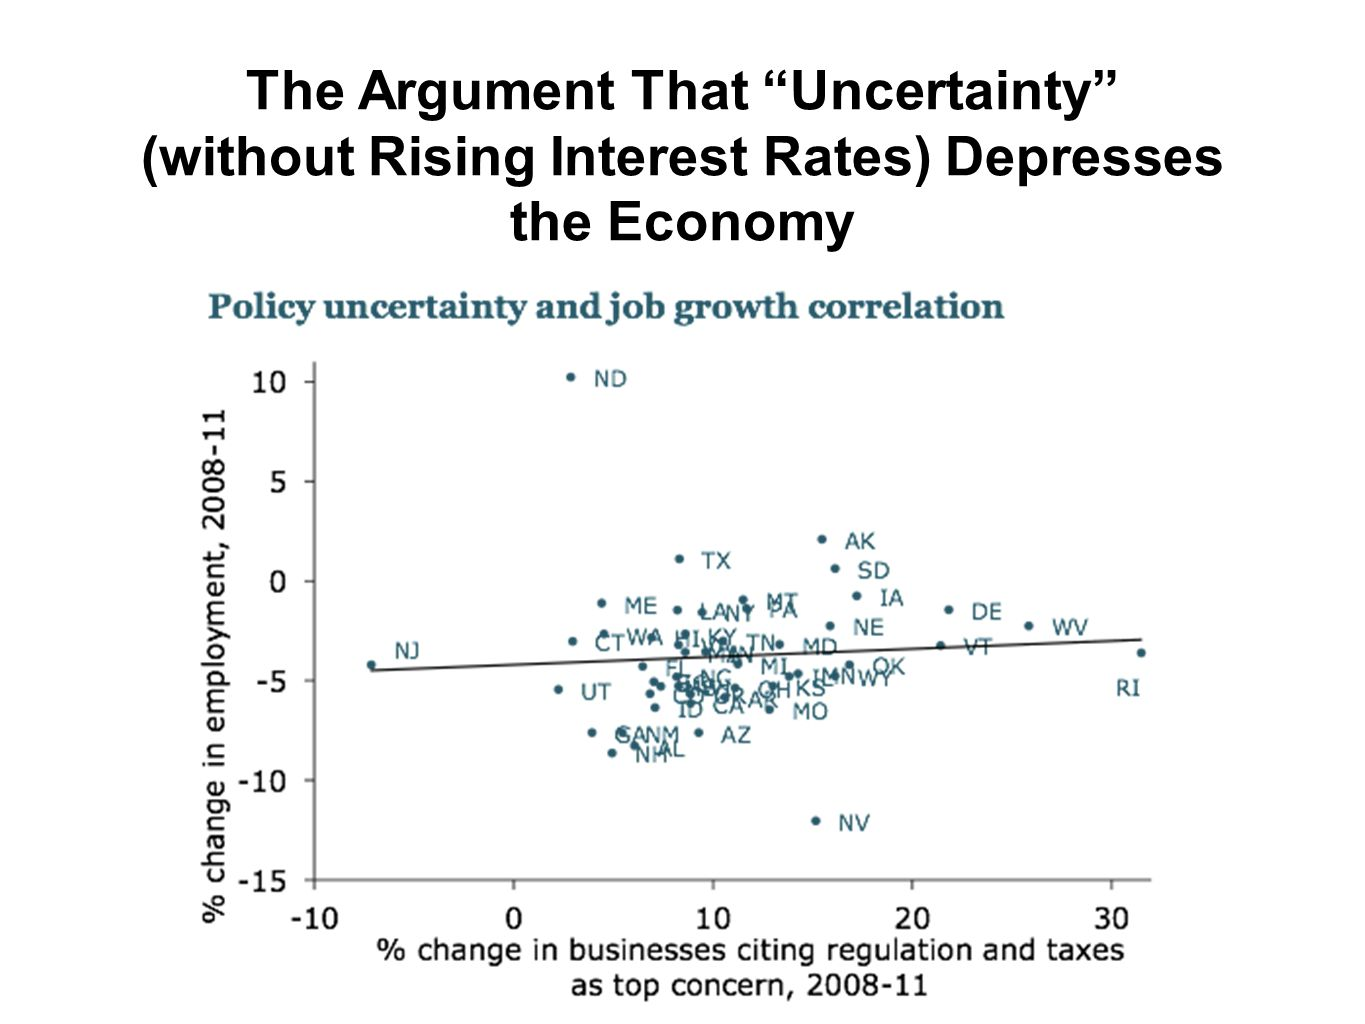 The Argument That Uncertainty (without Rising Interest Rates) Depresses the Economy